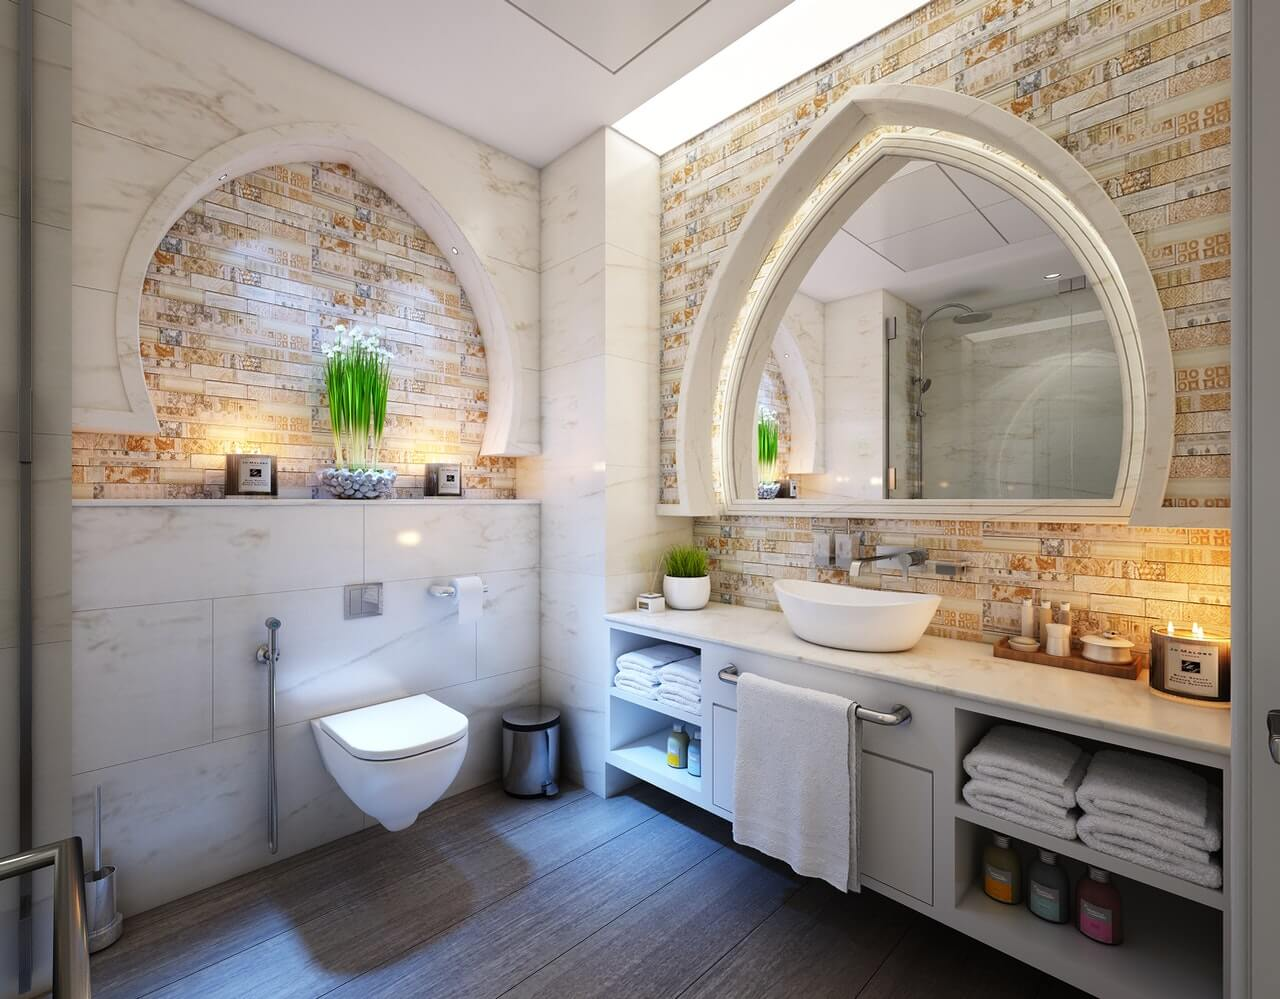 What to Look for When Shopping for a New Toilet